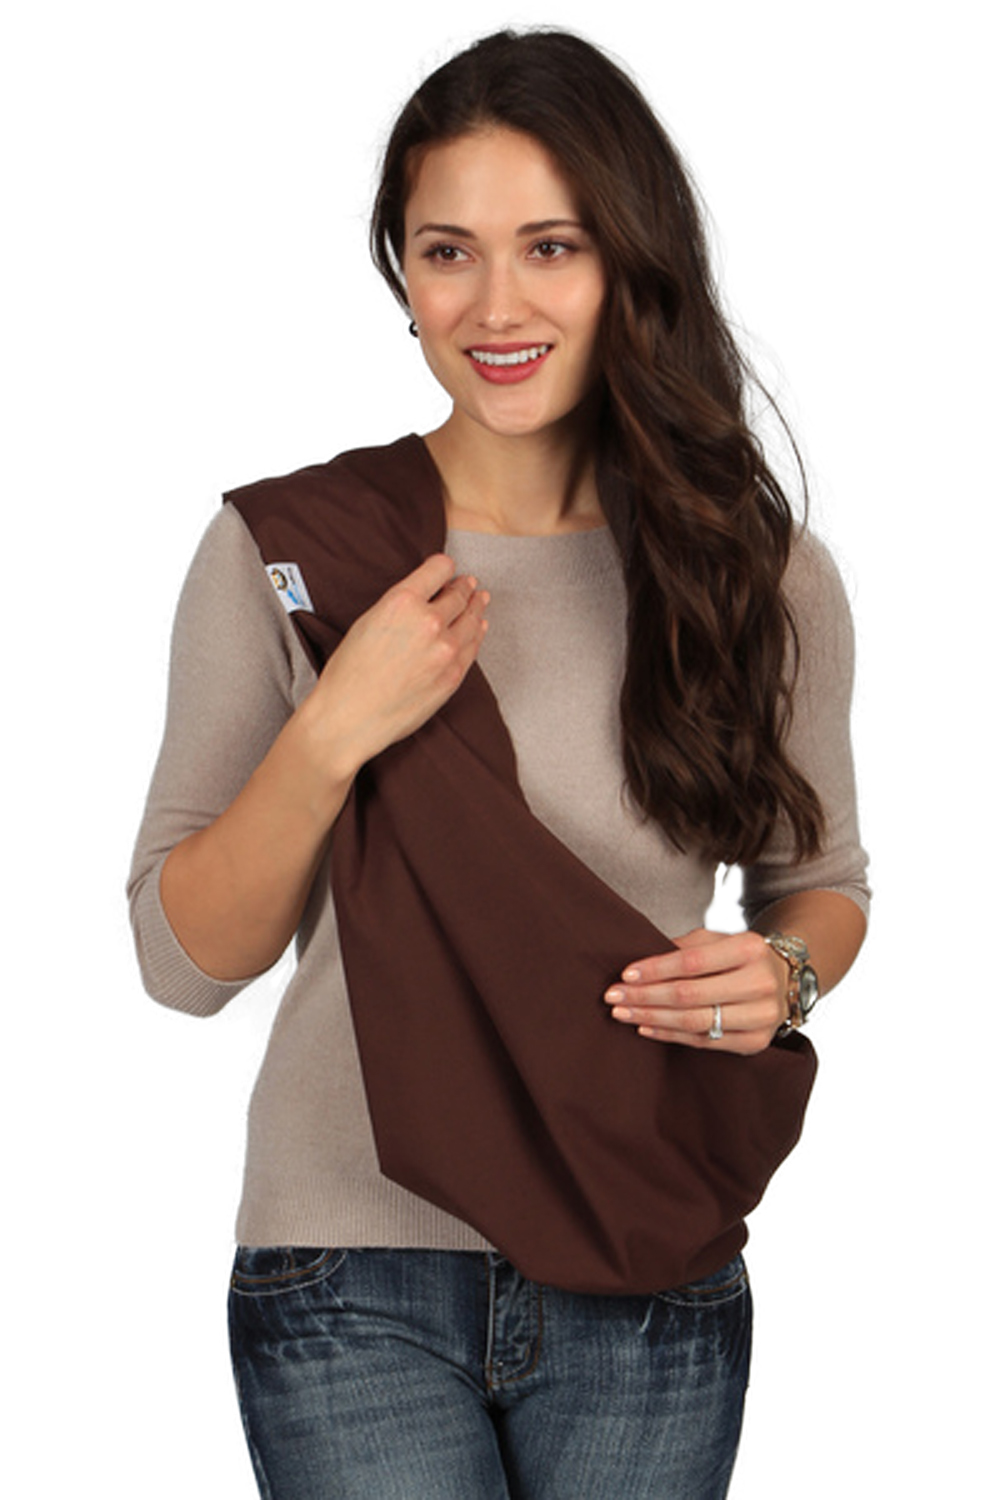 HugaMonkey Baby Sling Carrier for Newborn Babies, Infants and Toddlers - Brown, Medium